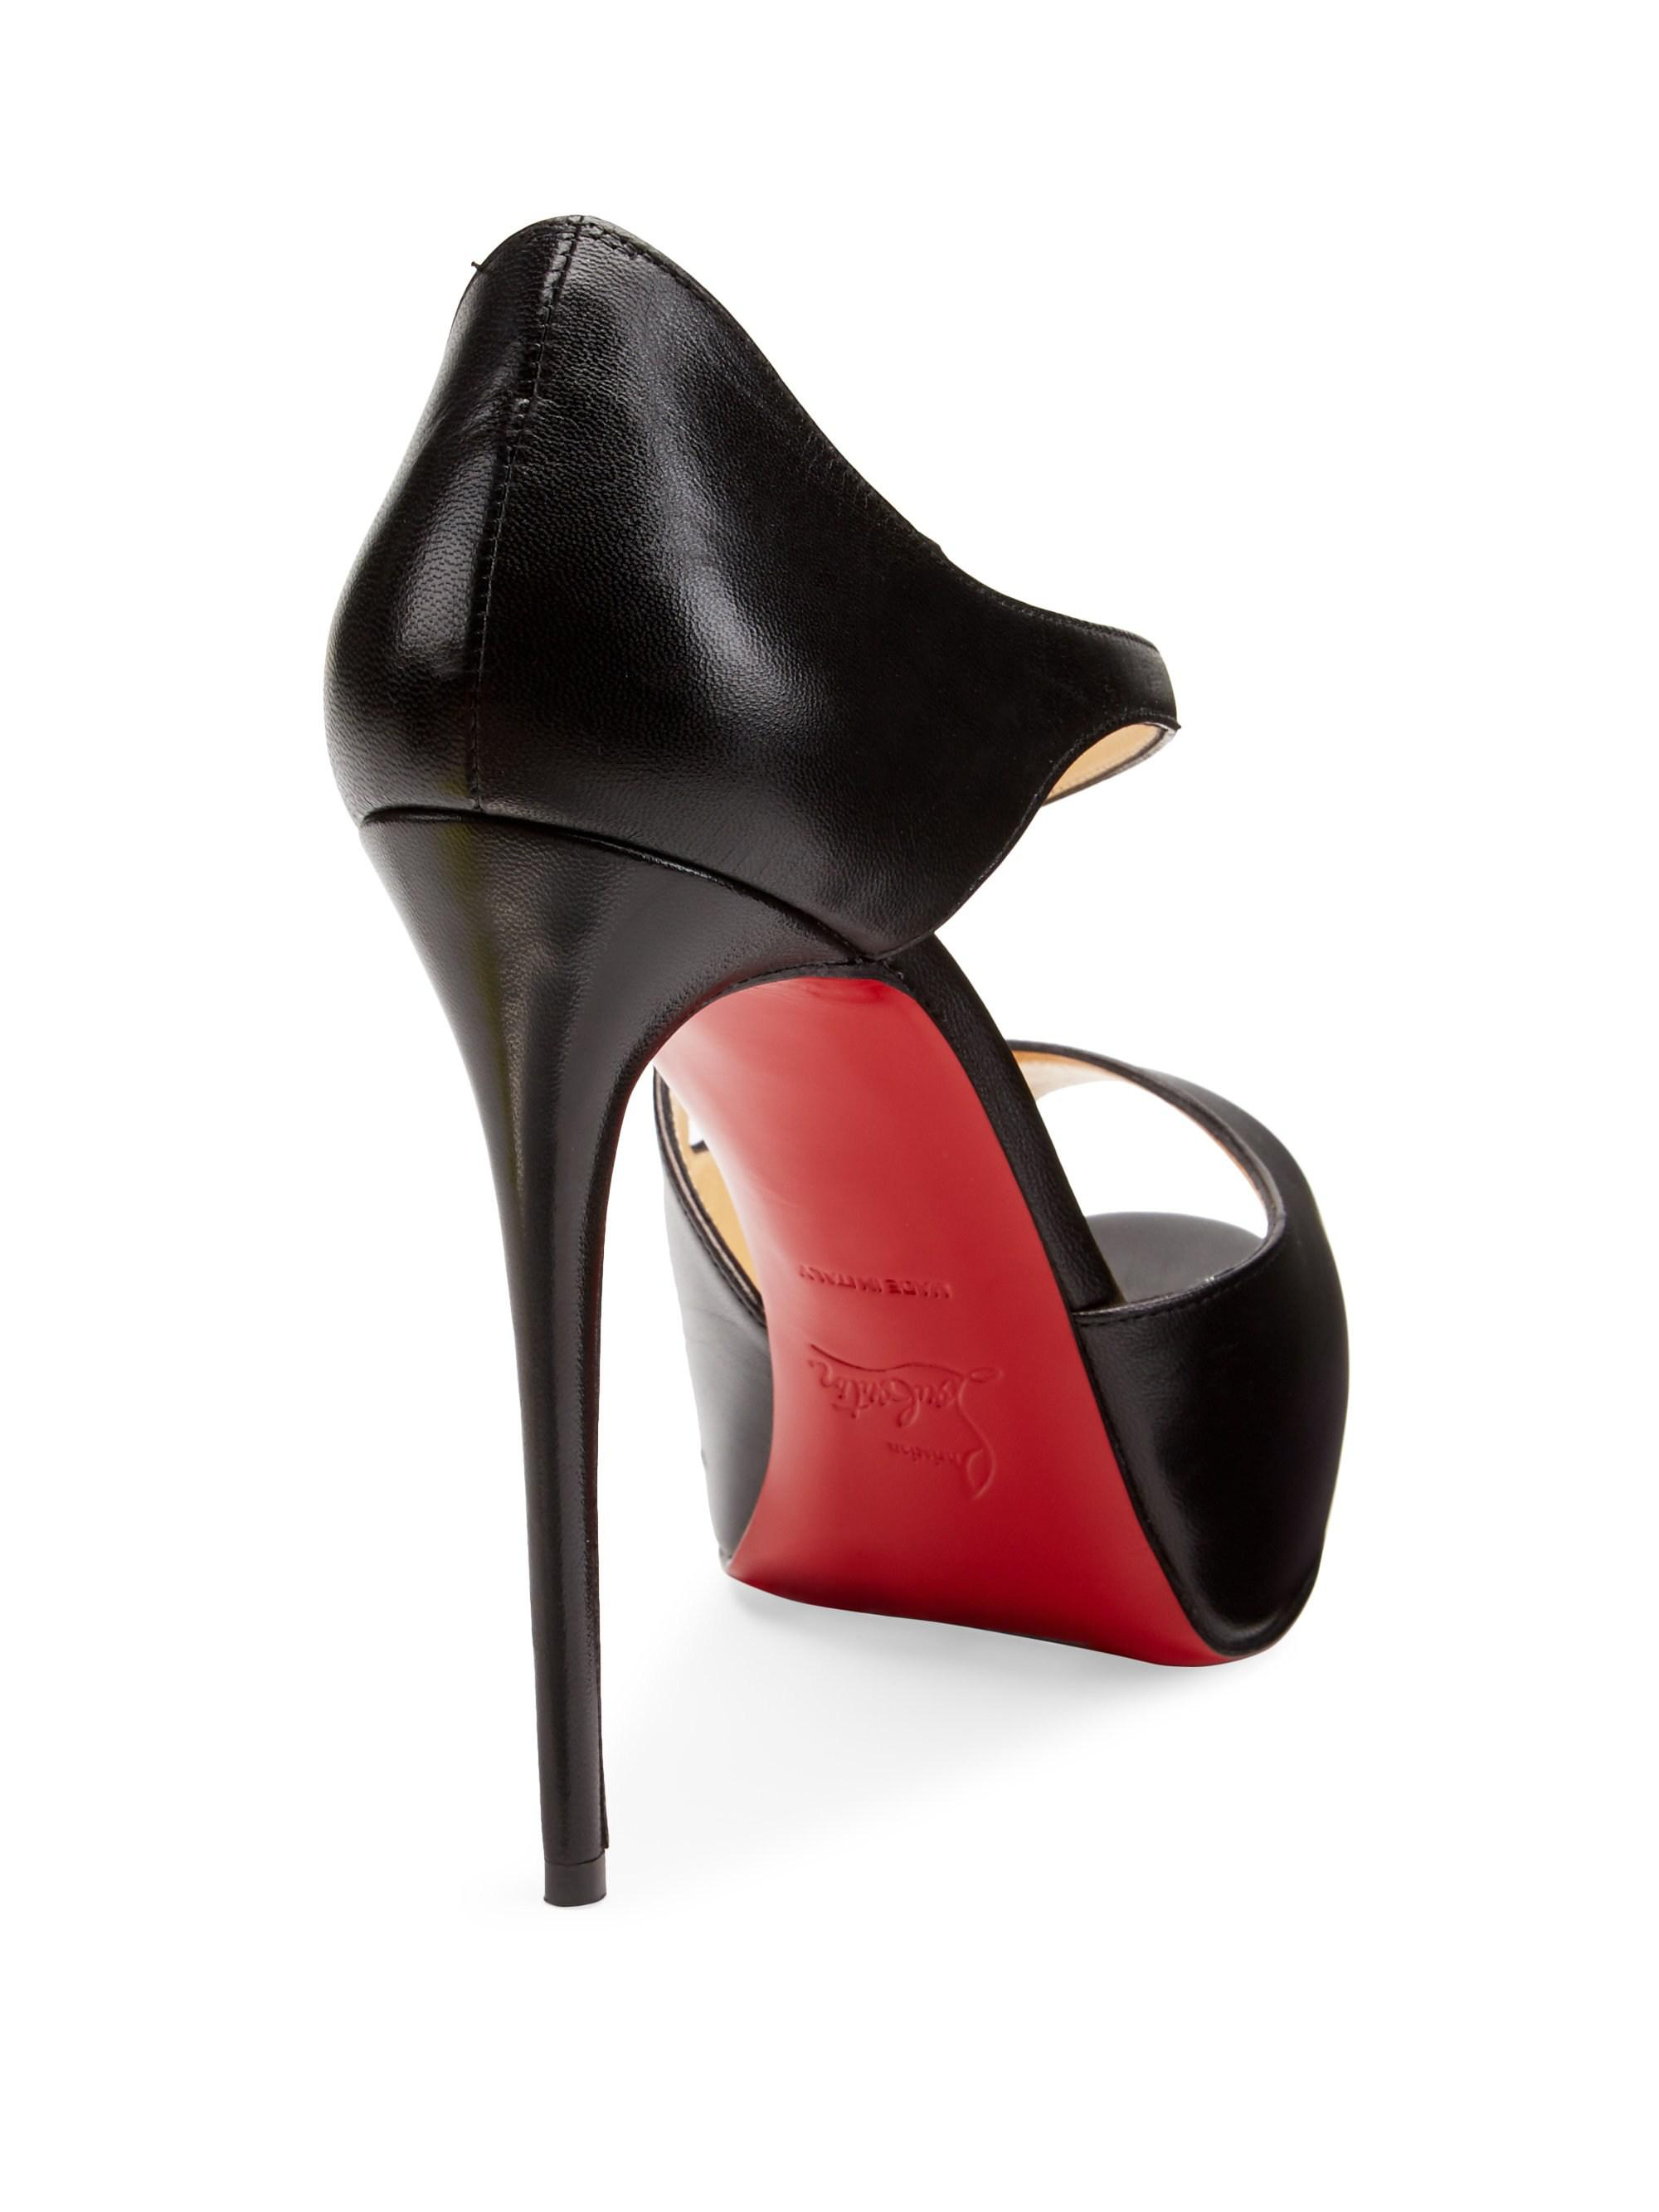 24415ff4e92 Christian Louboutin Black Catchy Two 120 Leather Peep Toe Pumps